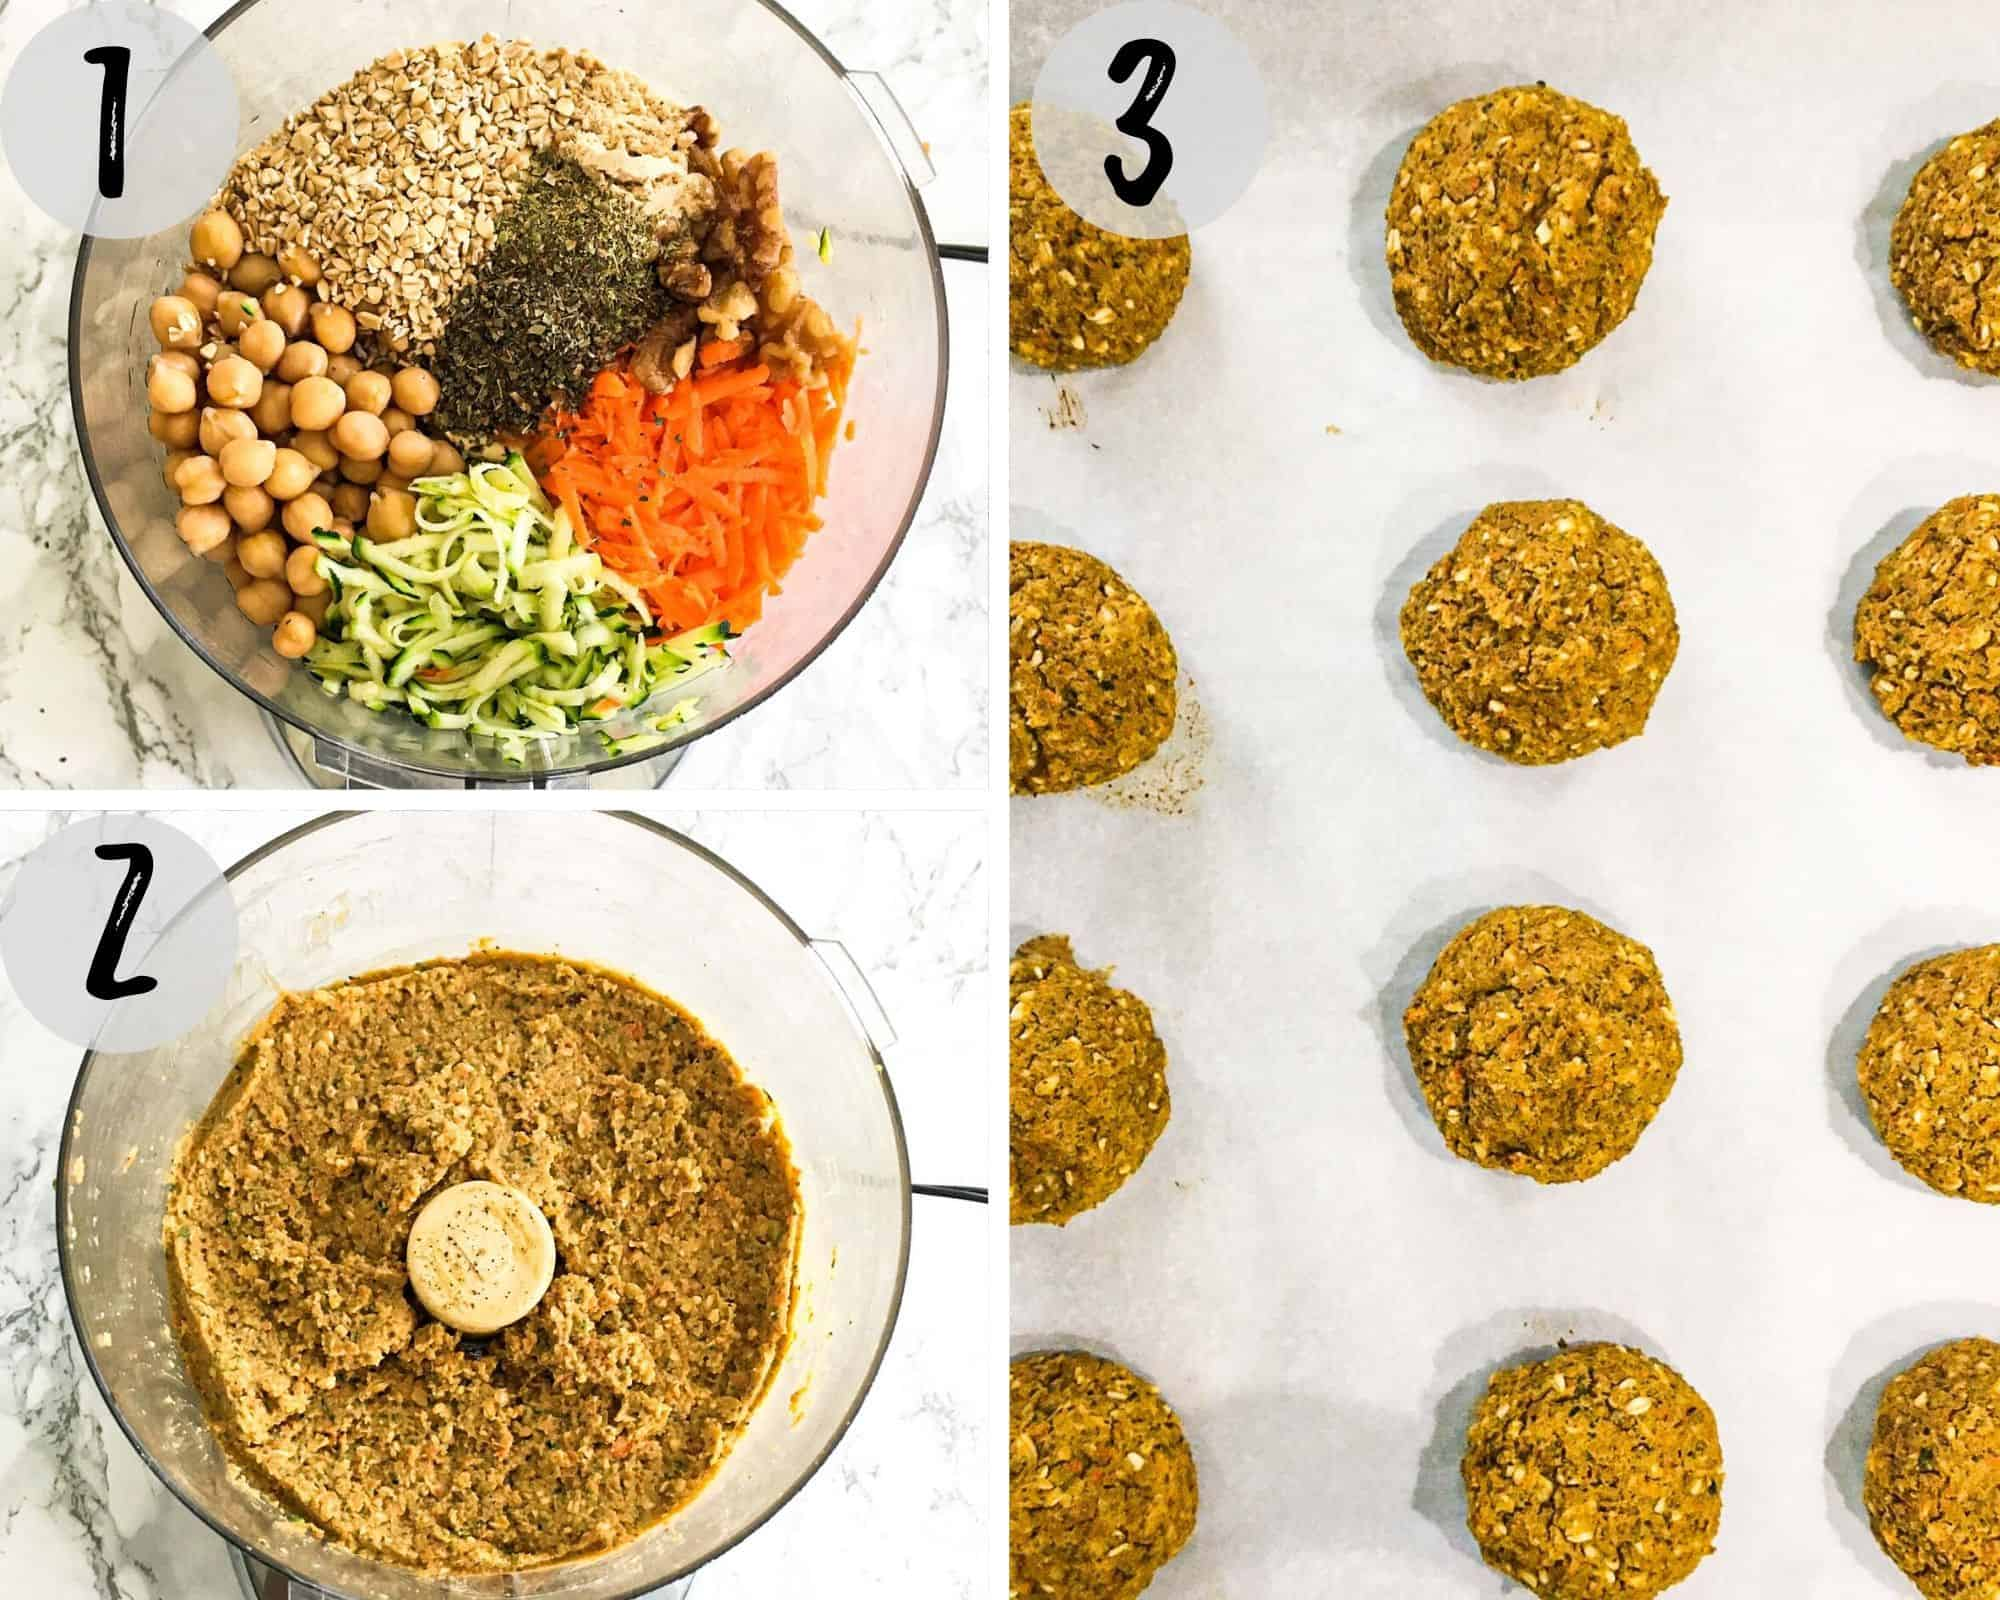 shredded veggies, chickpeas, oats and seasoning in food processor to make batter